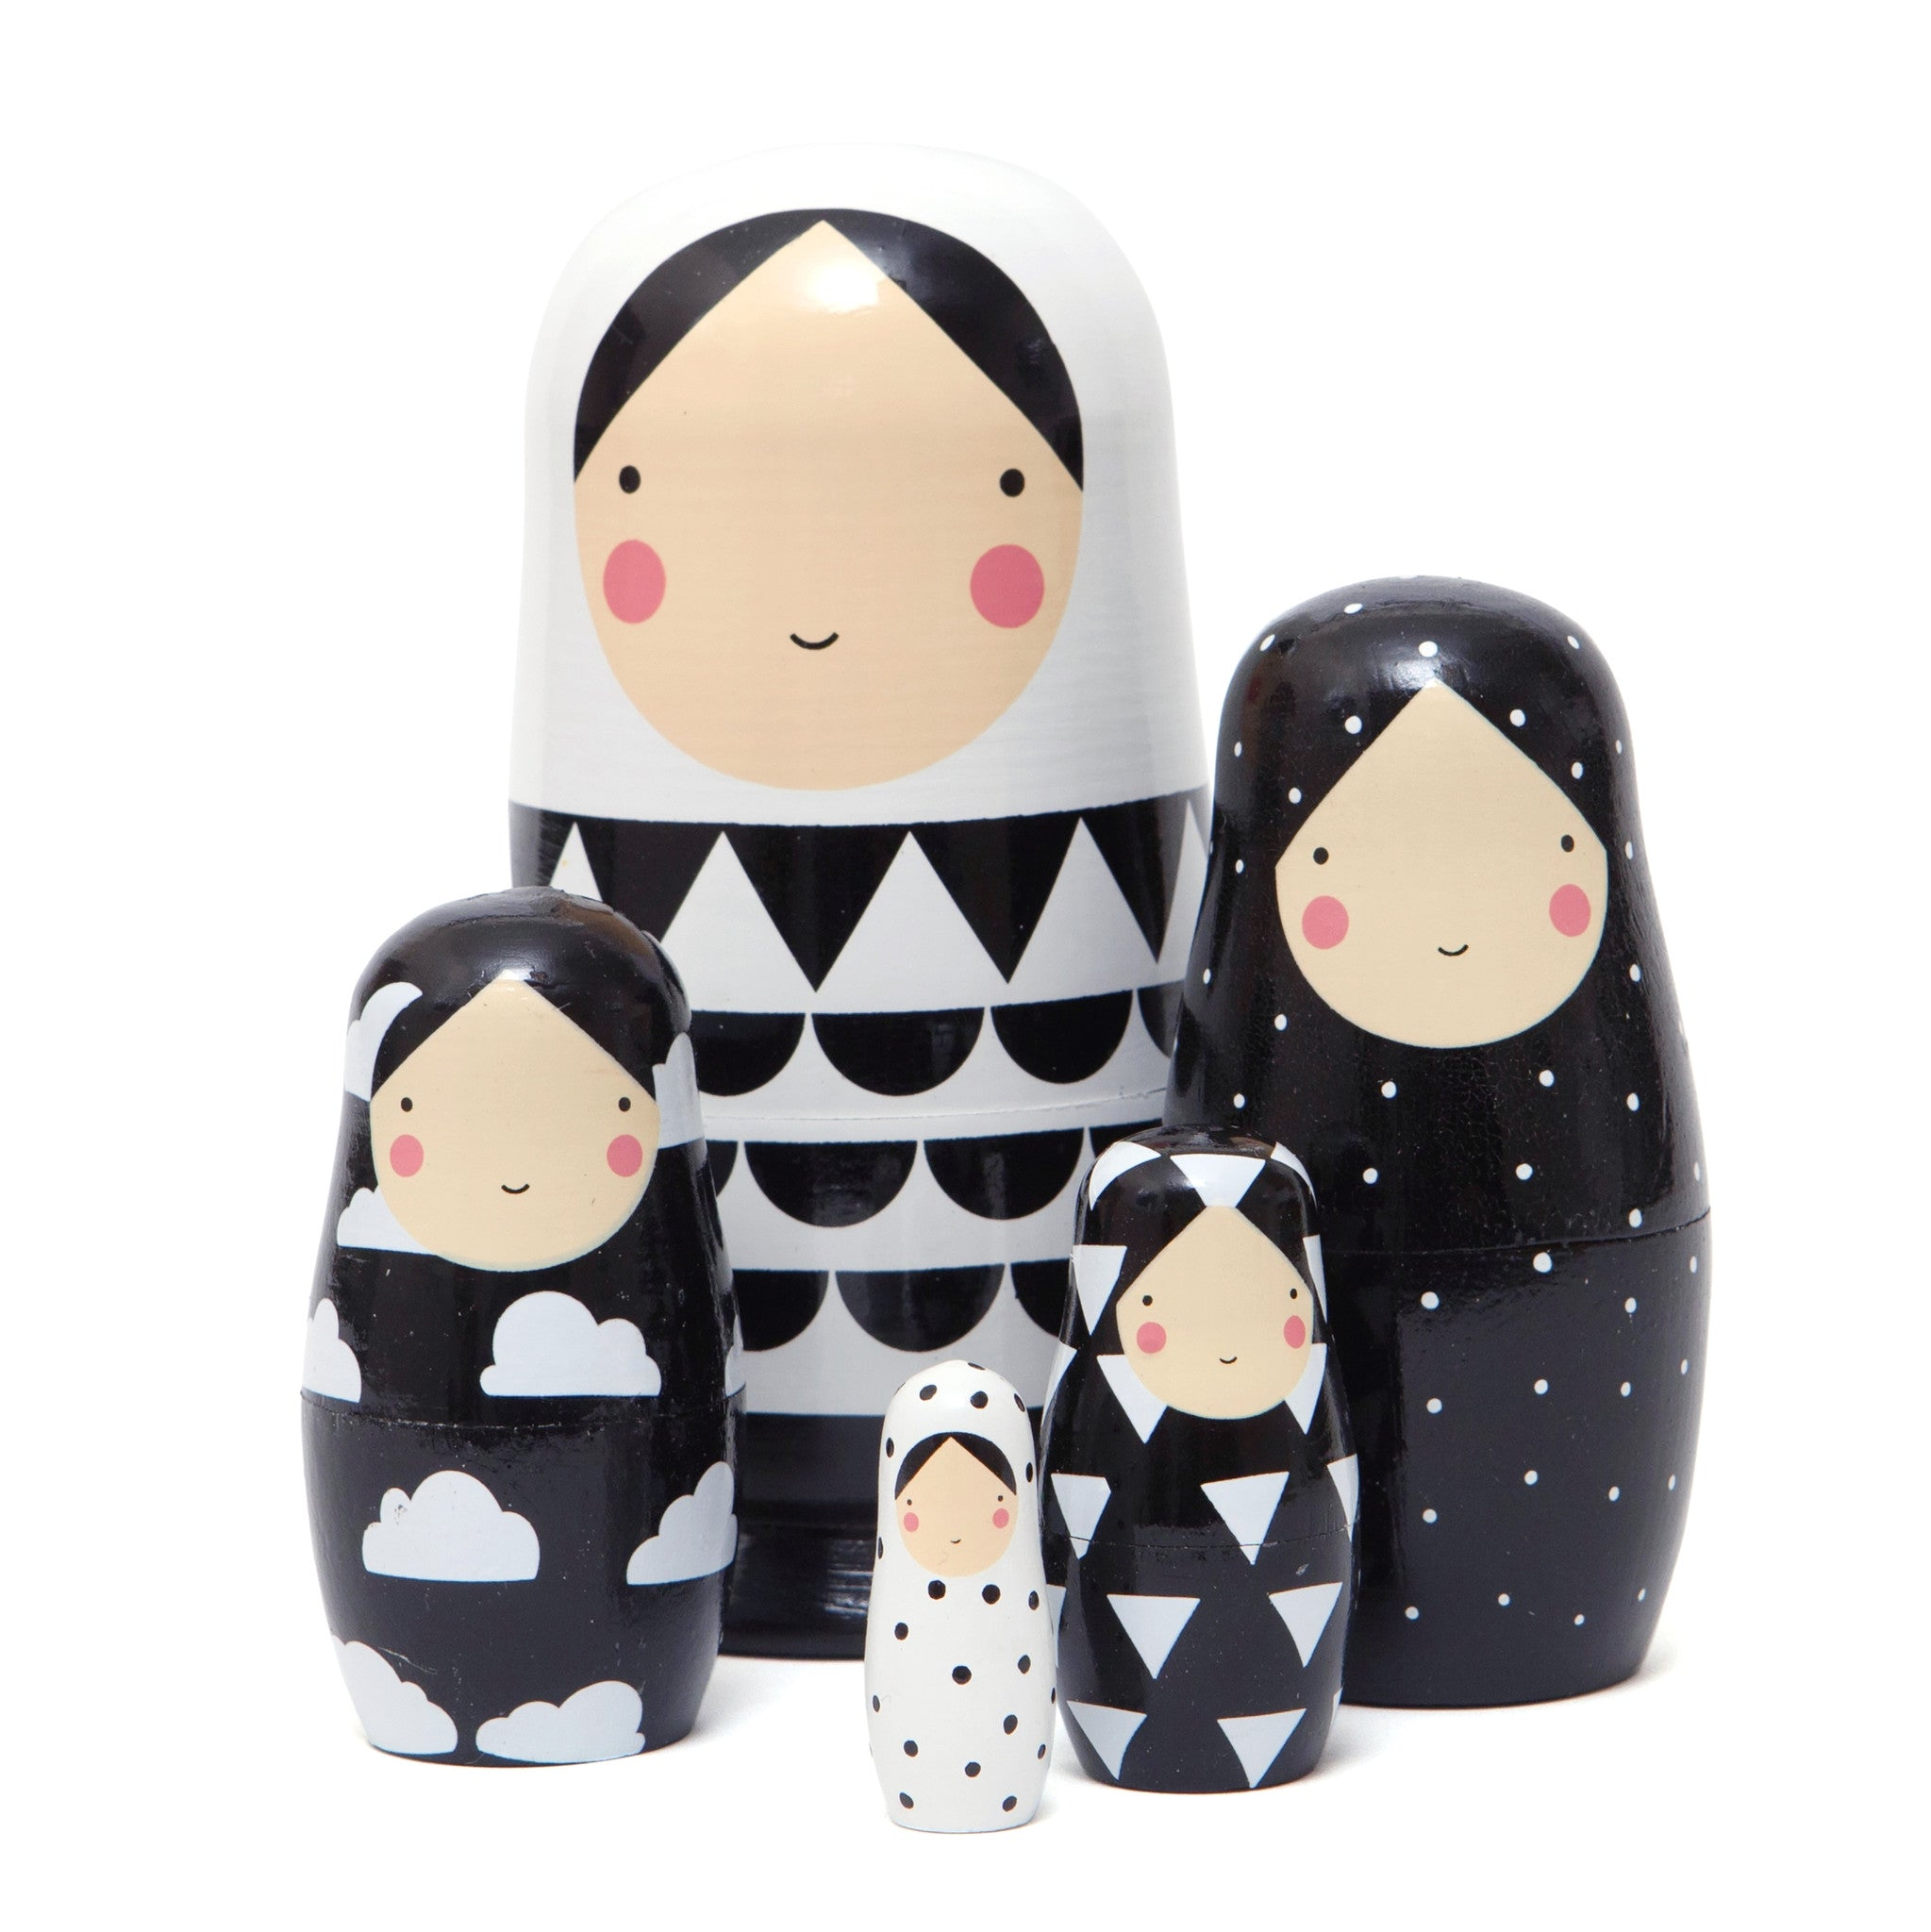 Nesting dolls black and white